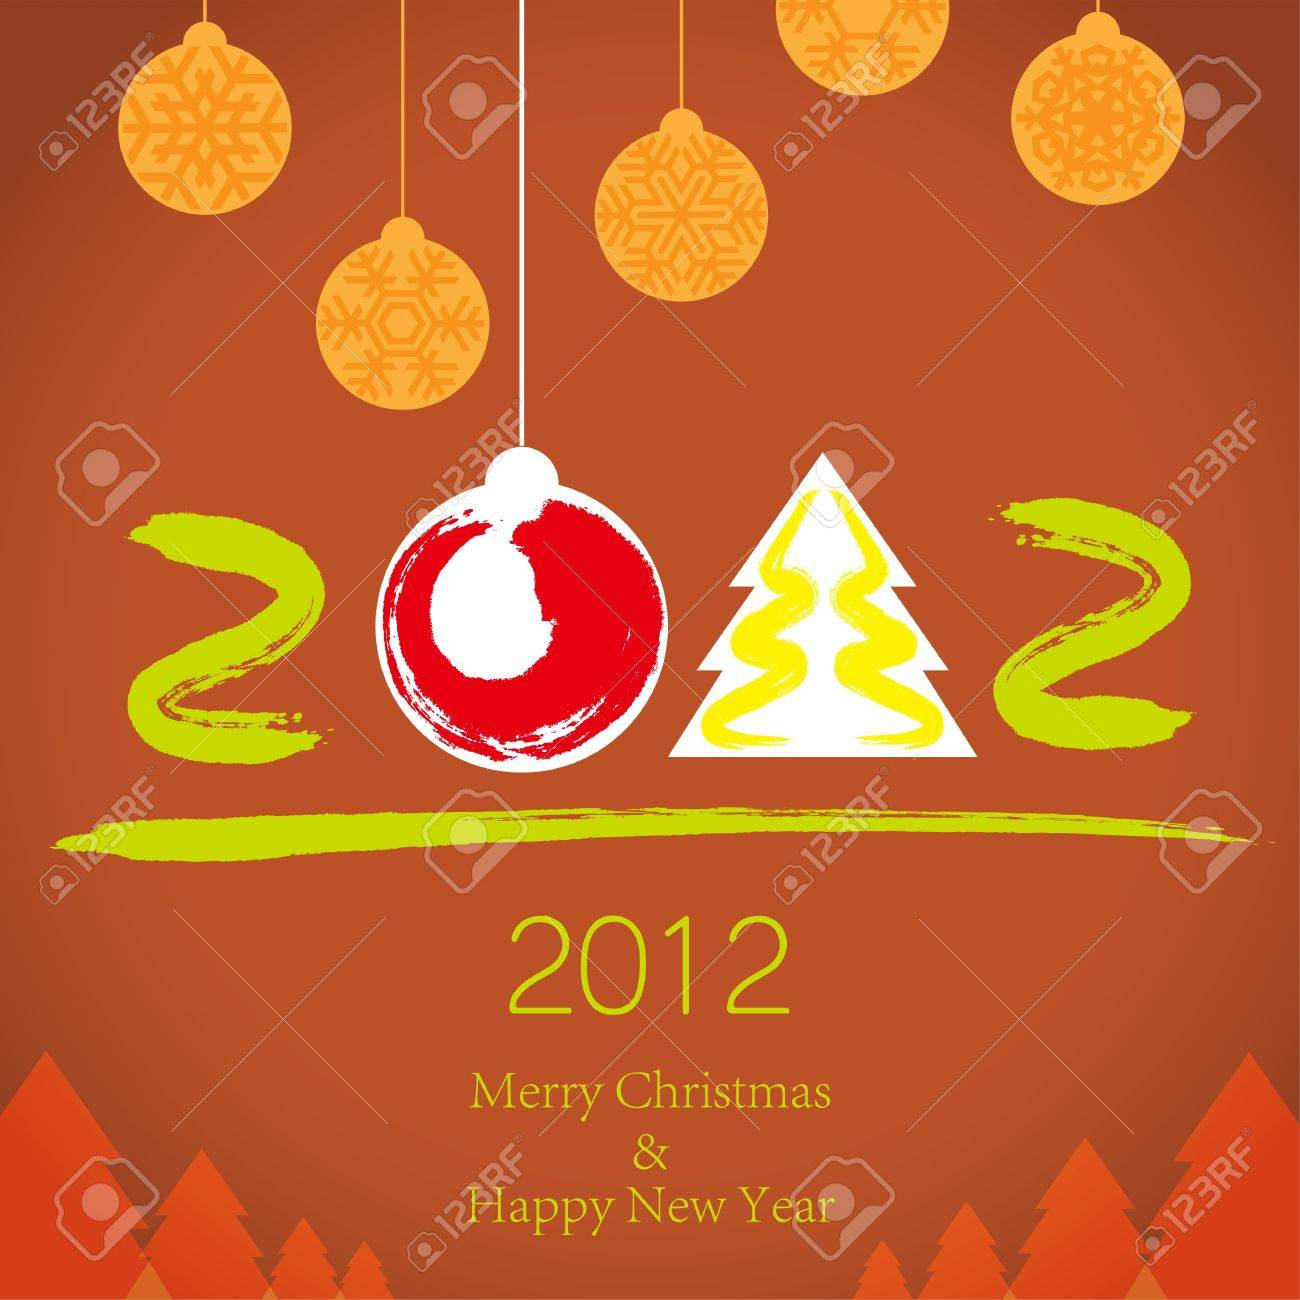 2011 Merry Christmas and 2012 Happy New Year background Stock Vector - 10995738